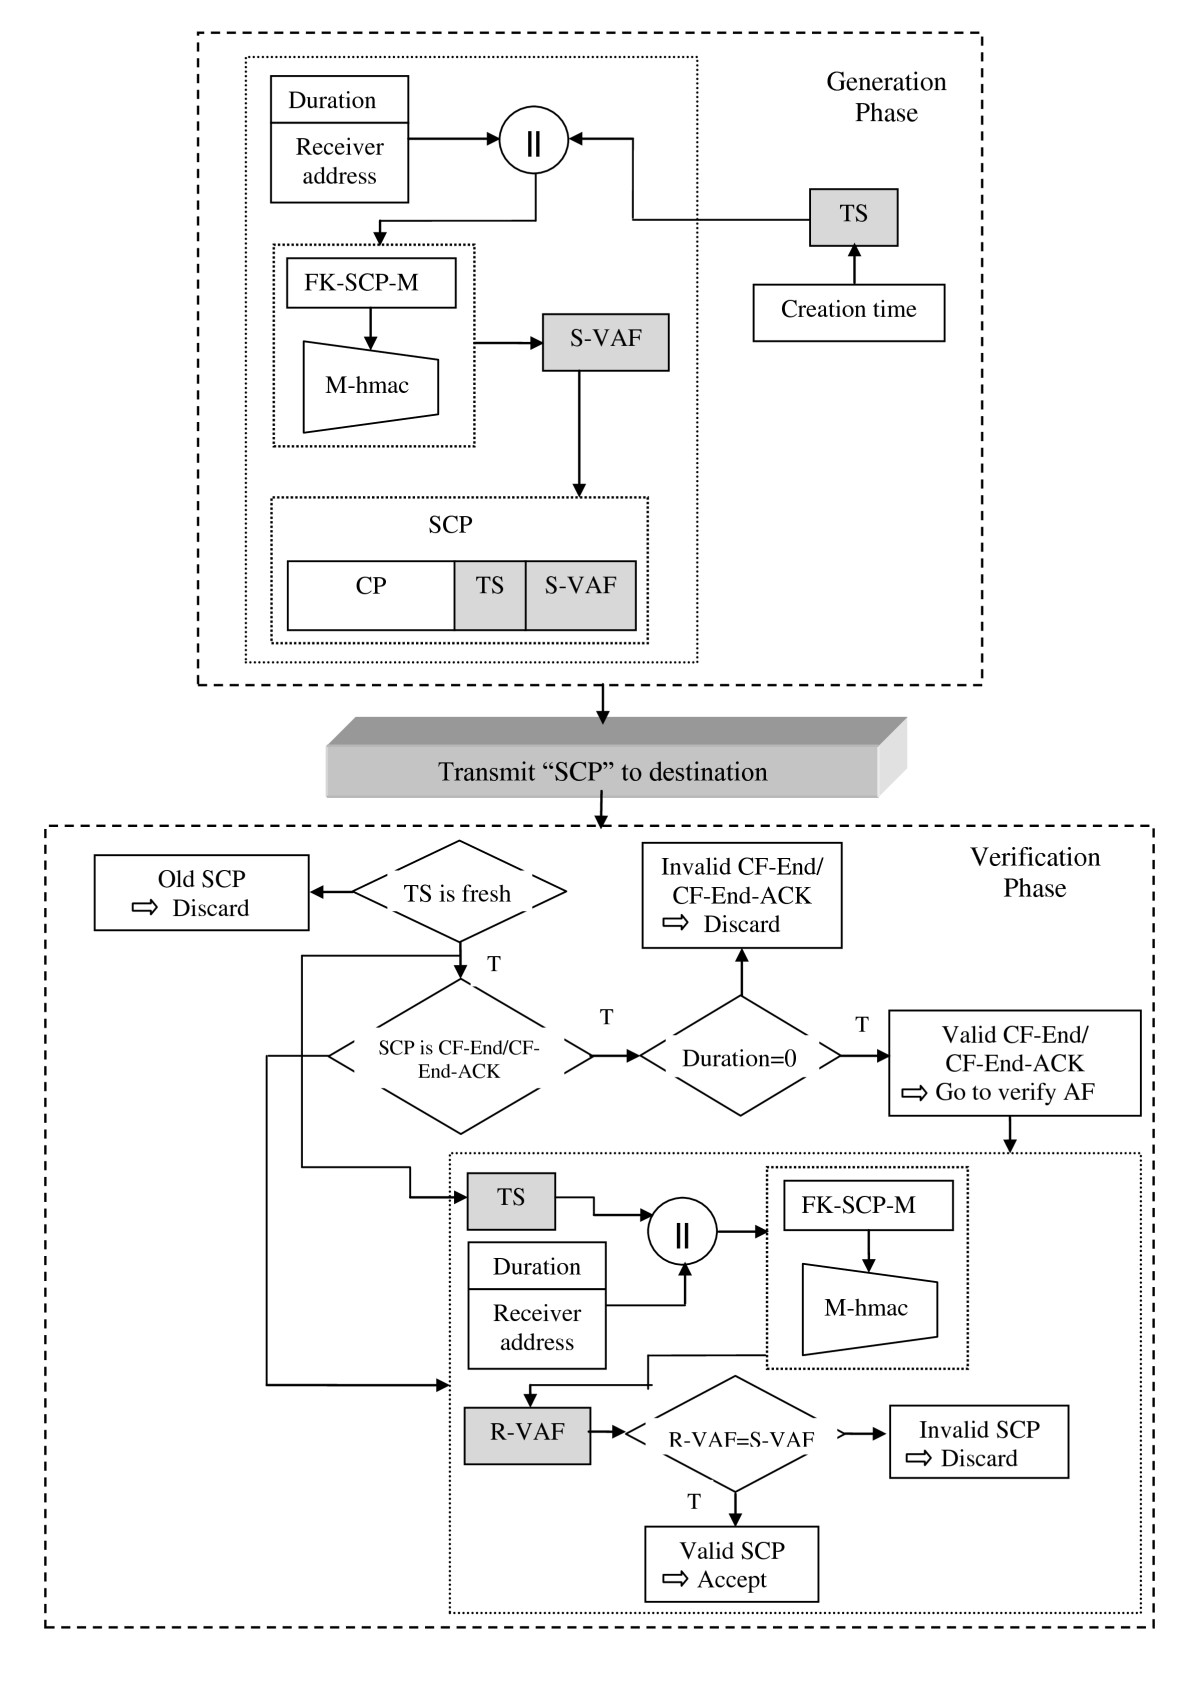 https://static-content.springer.com/image/art%3A10.1186%2F1687-417X-2011-4/MediaObjects/13635_2010_Article_7_Fig5_HTML.jpg